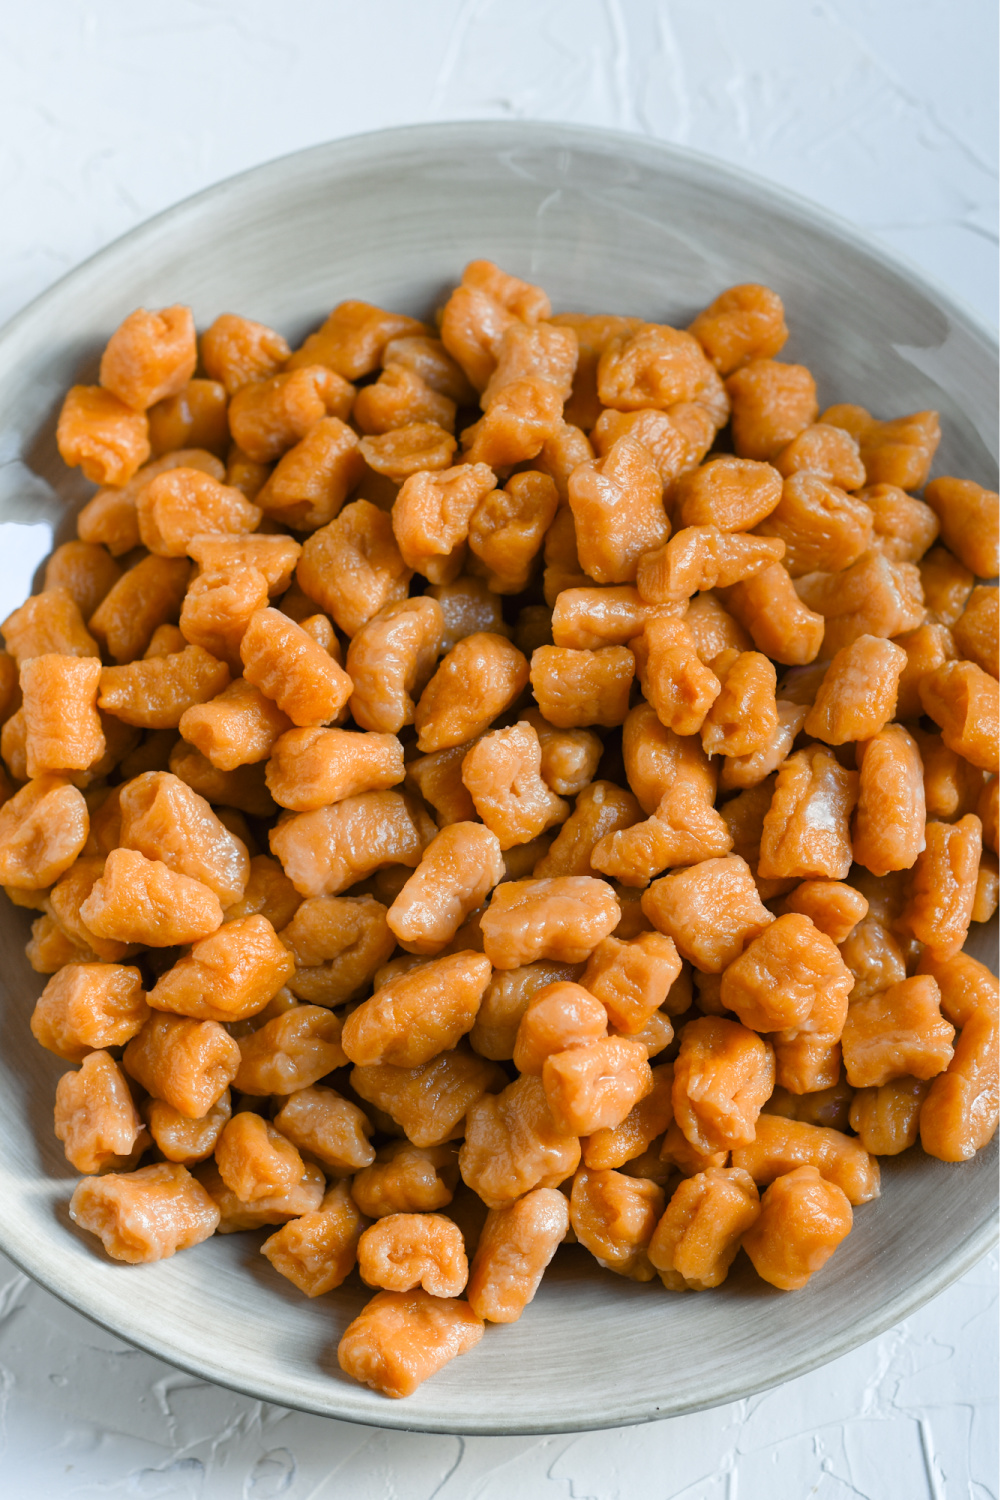 How to make Sweet Potato Gnocchi